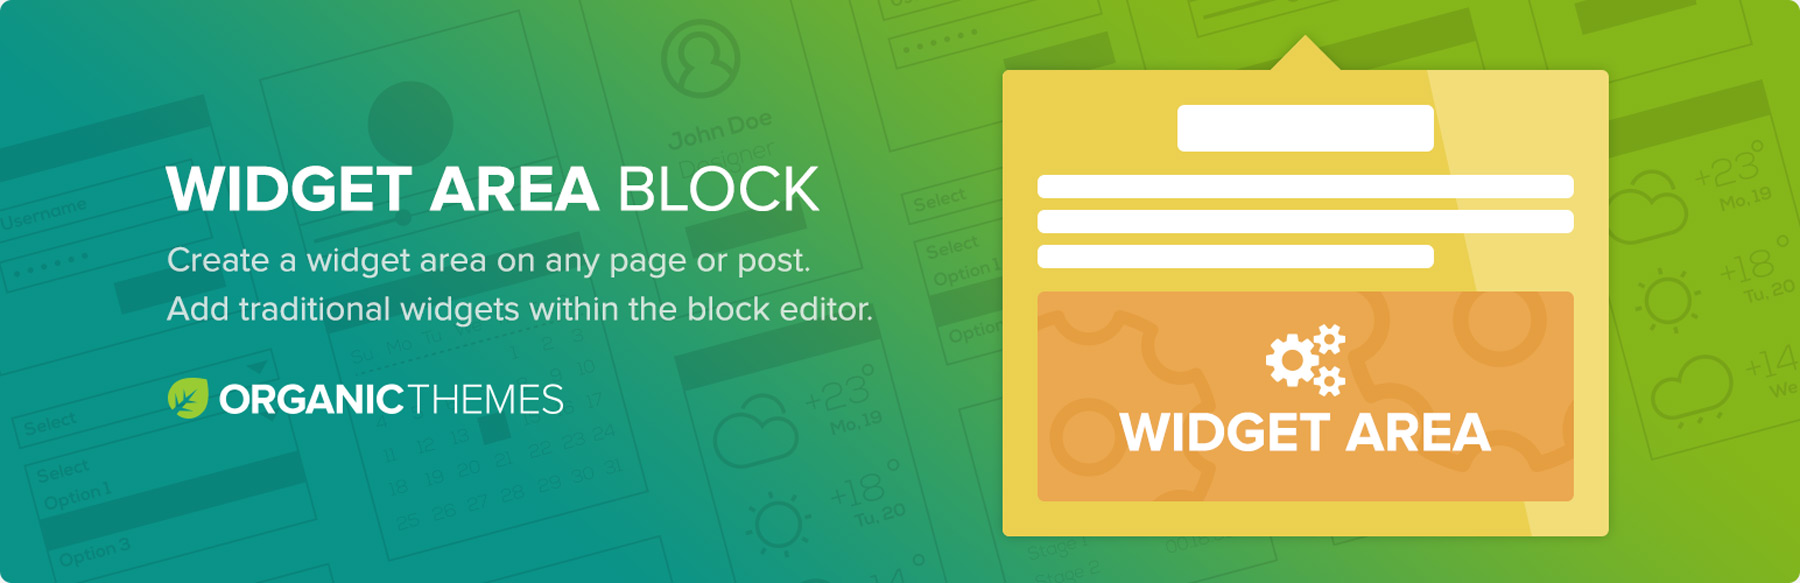 Wordpress Widget Area Block Plugin